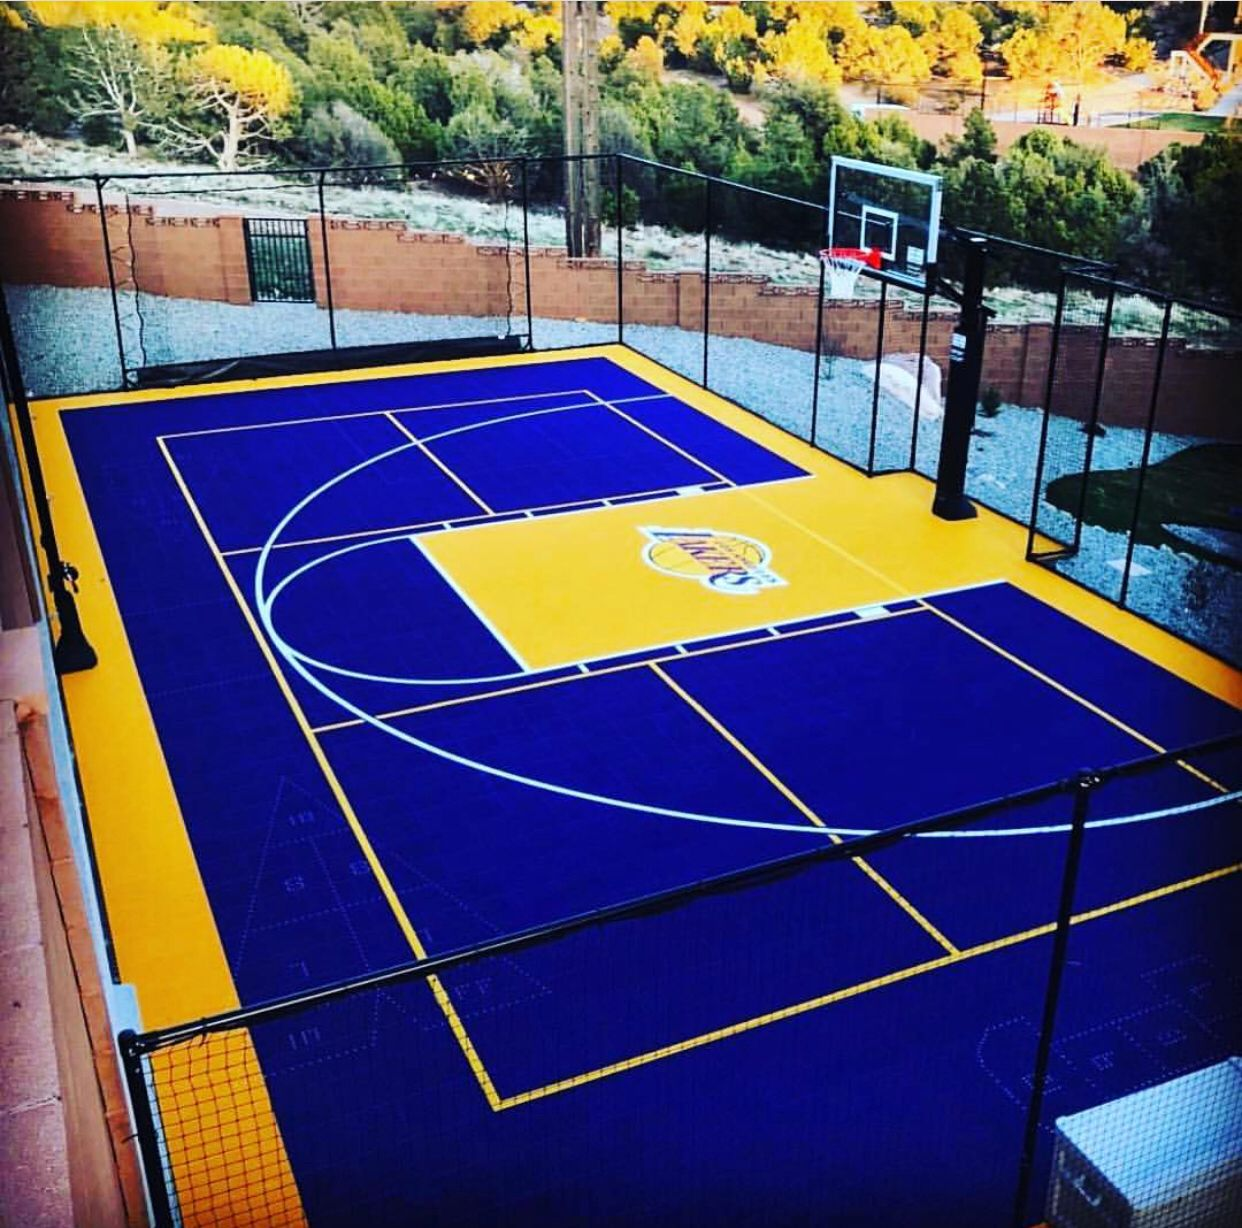 Backyard Sport Court Multi-Game, Outdoor Residential